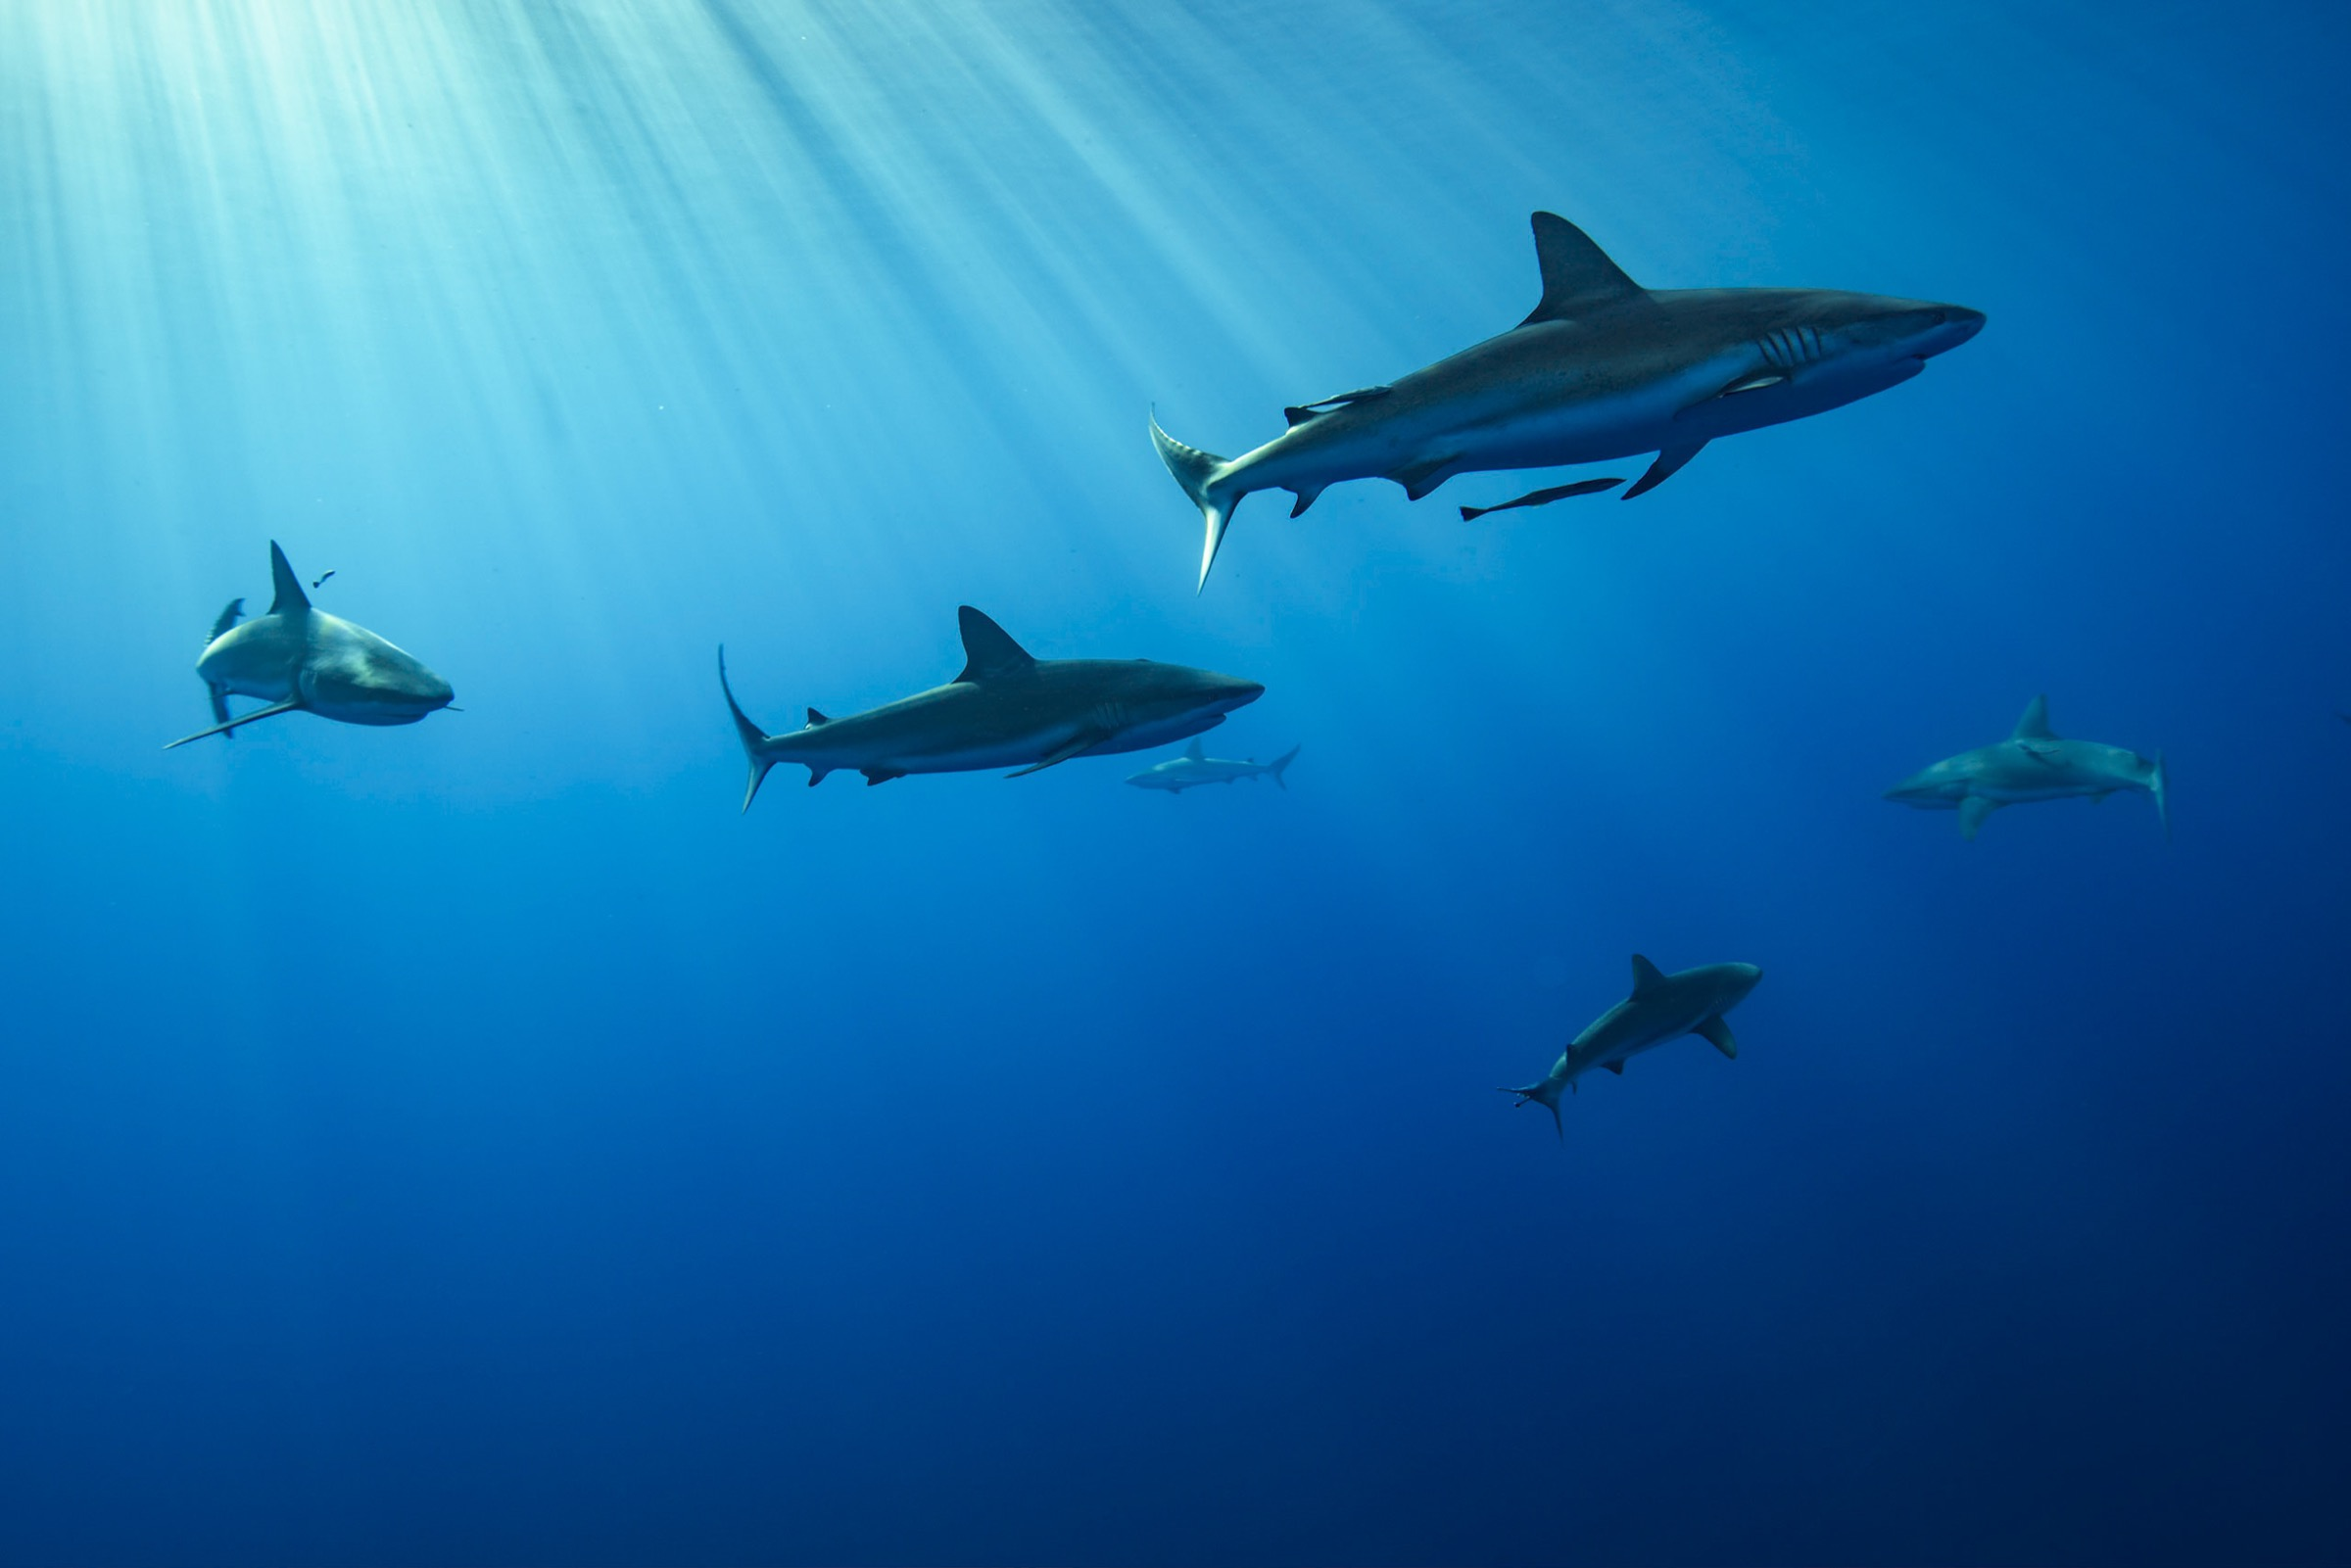 Caribbean reef sharks (<em>Carcharhinus perezii</em>) and silky sharks (<em>Carcharhinus falciformis</em>) circled overhead as Aburto and fellow divers ascended back toward the surface in the Gardens of the Queen.